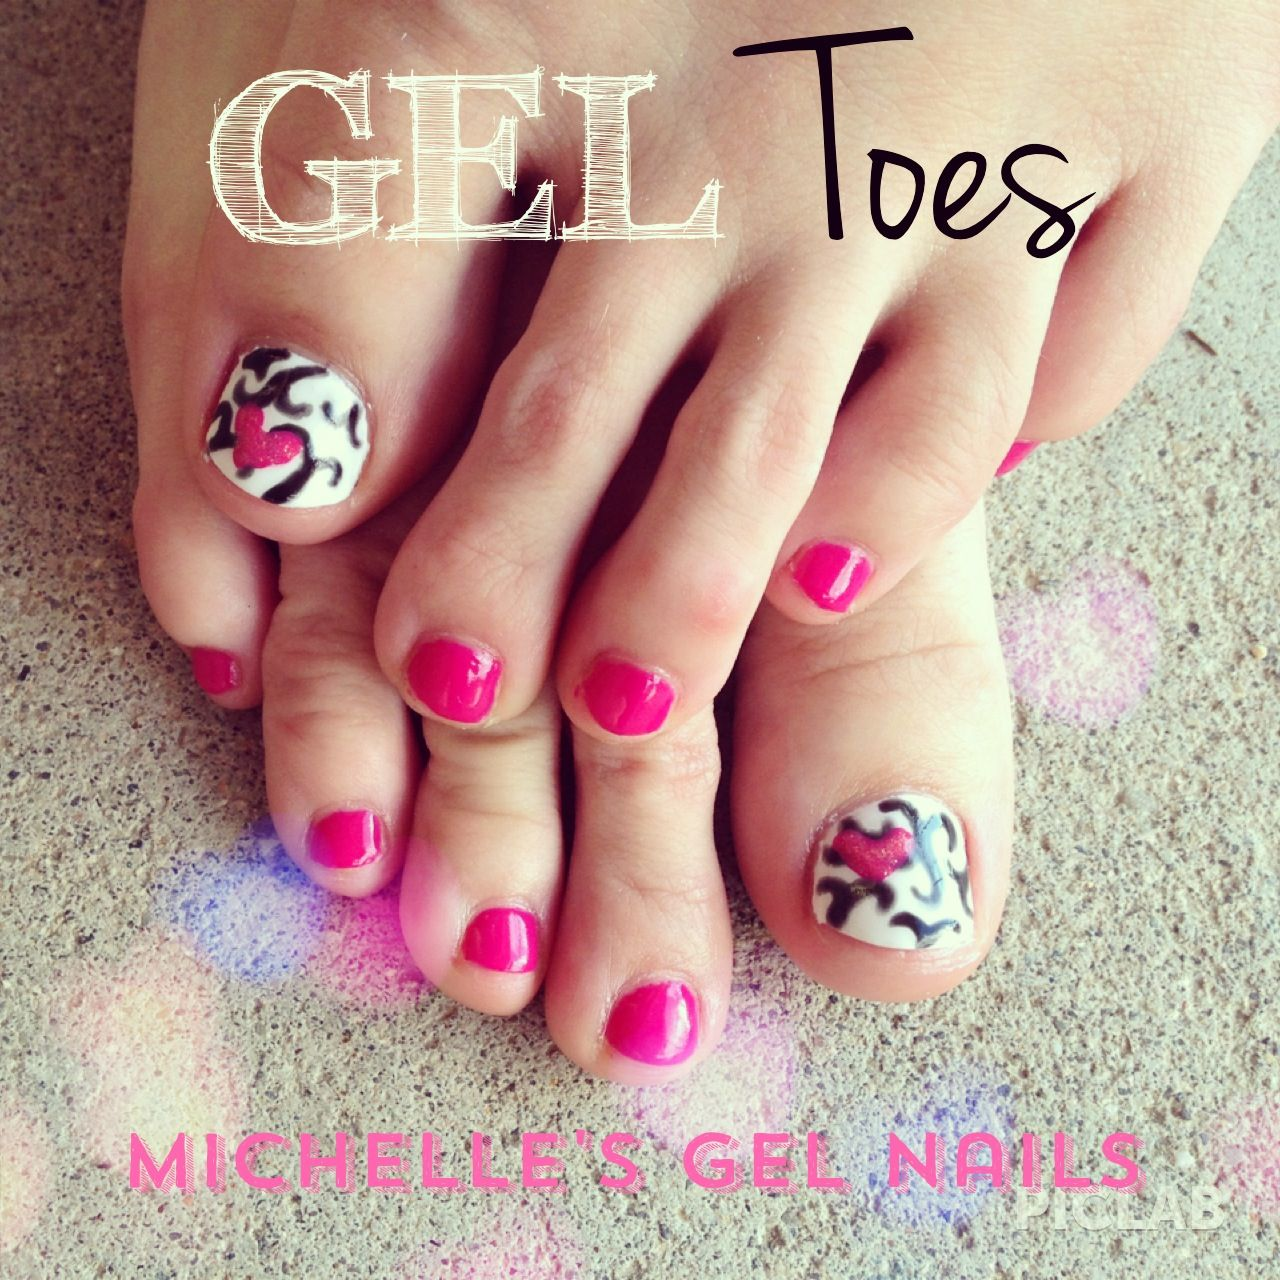 Gel toes, cute pink toes, nail art, Michelle\u0027s gel nails